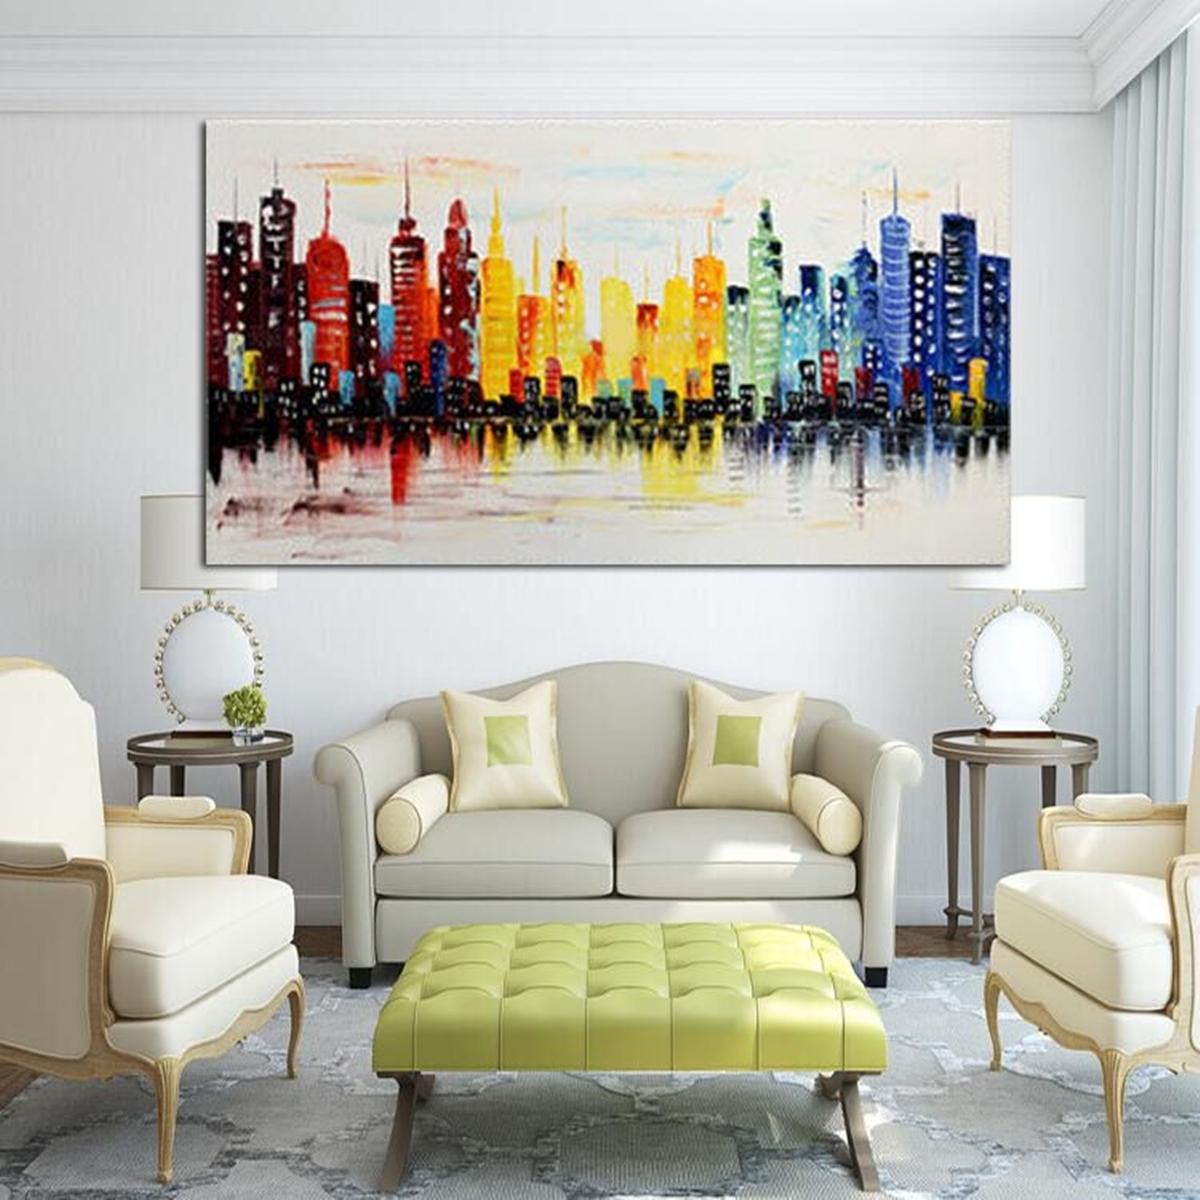 120X60Cm Modern City Canvas Abstract Painting Print Living Room Art With Most Recently Released Framed Wall Art For Living Room (View 1 of 20)